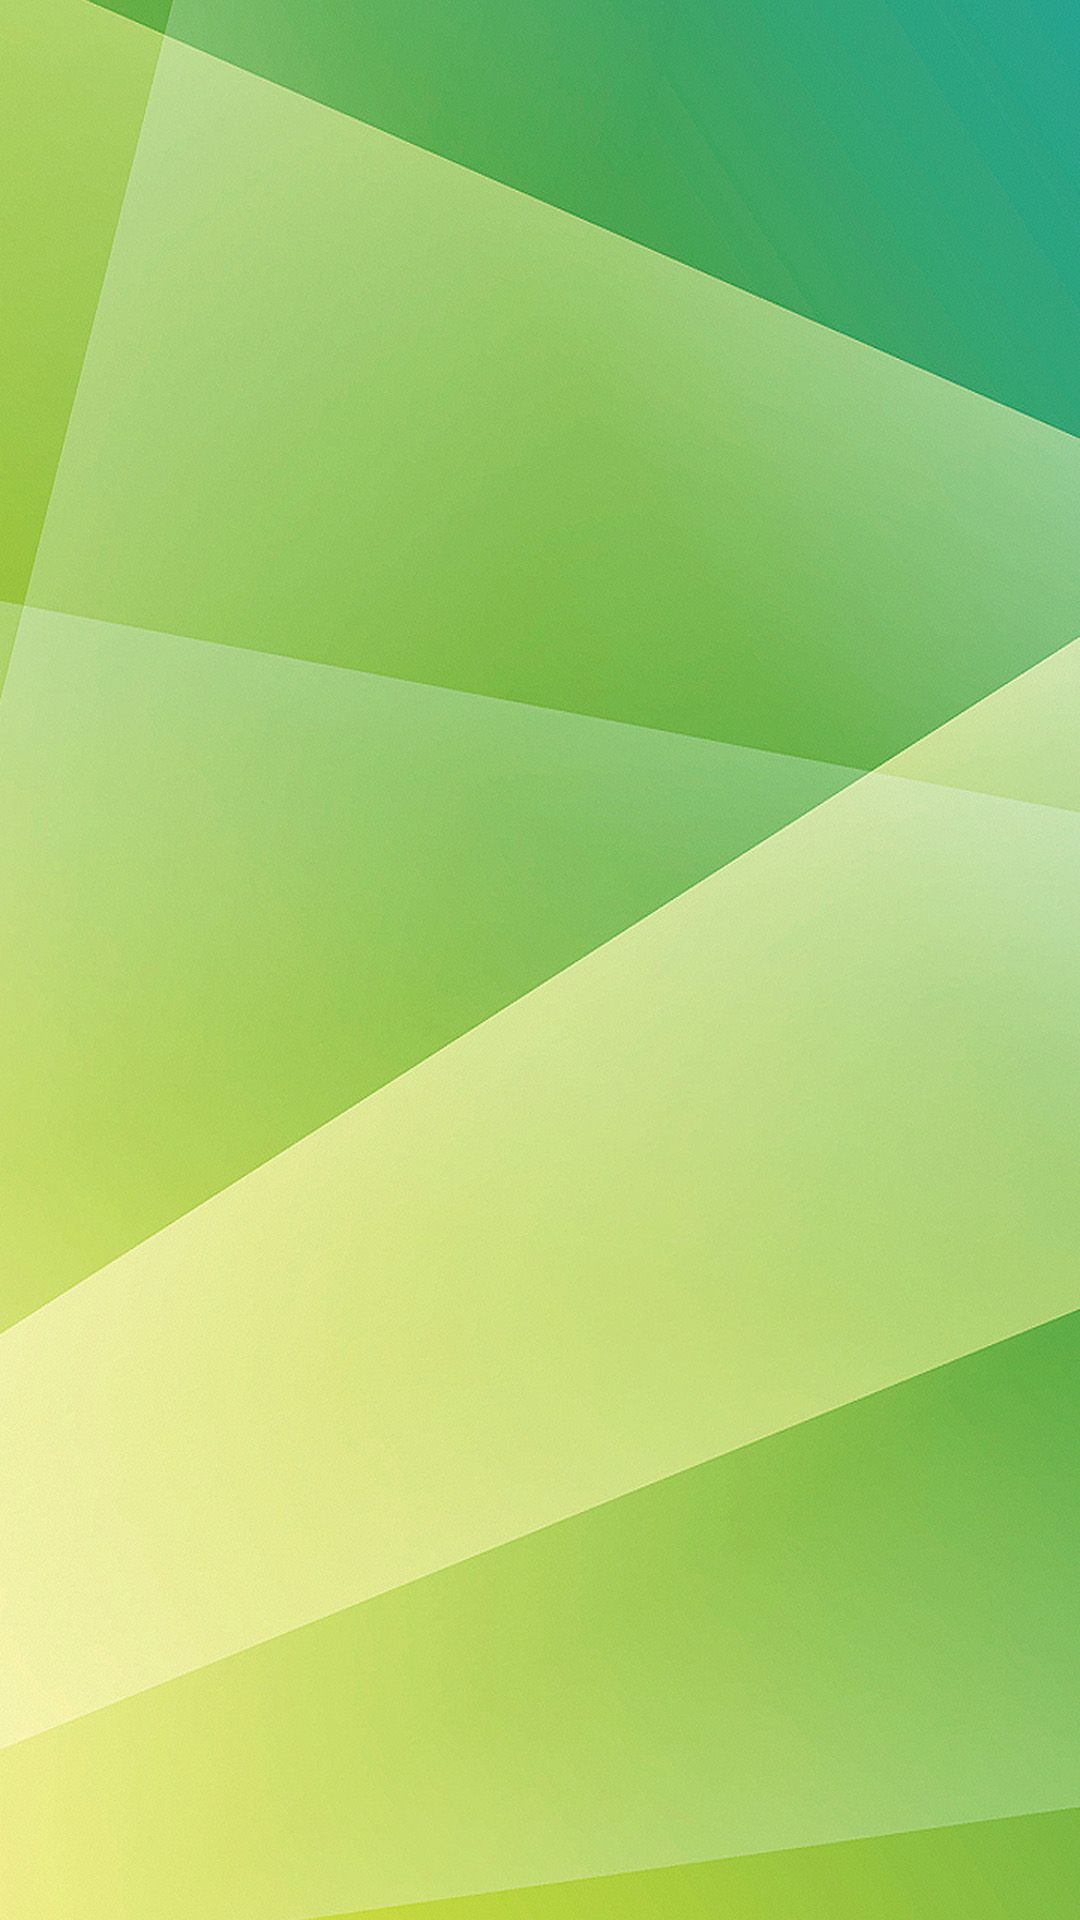 Wallpaper iphone green - Geometry Of The Us Green Iphone 6 Plus Wallpaper Name Tags Pinterest Wallpaper And Geometry